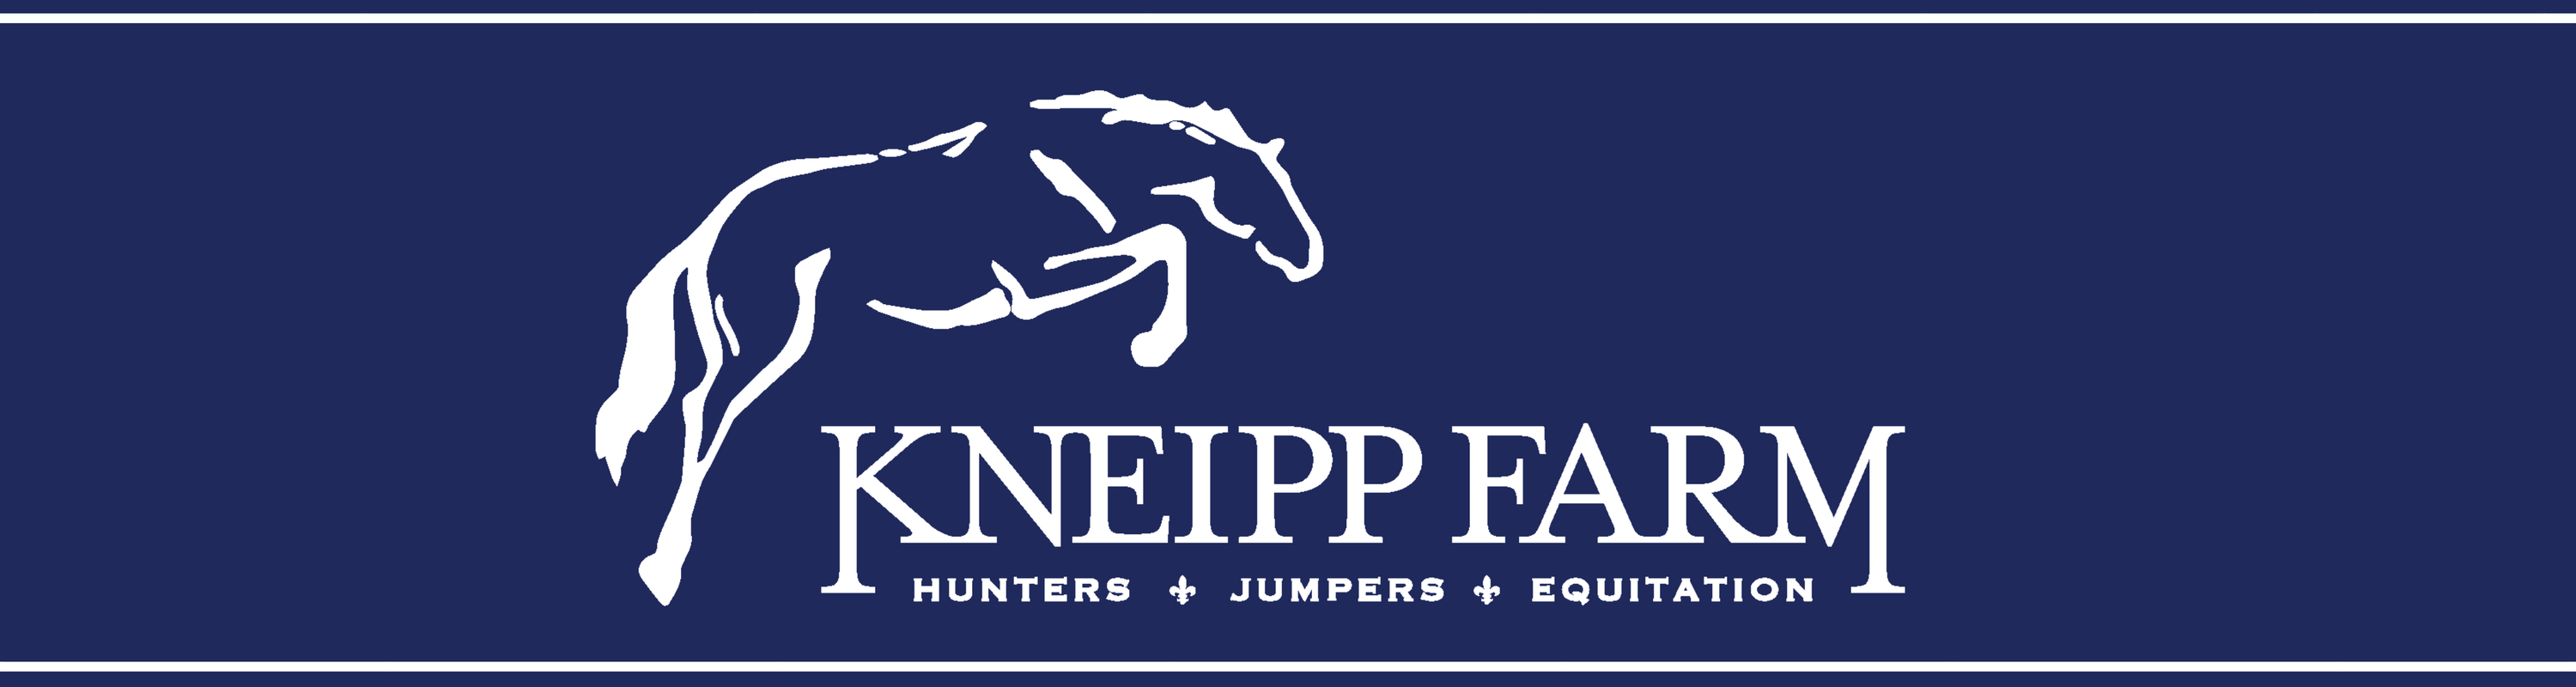 Kneipp Farm – Horse riding lessons and horse boarding